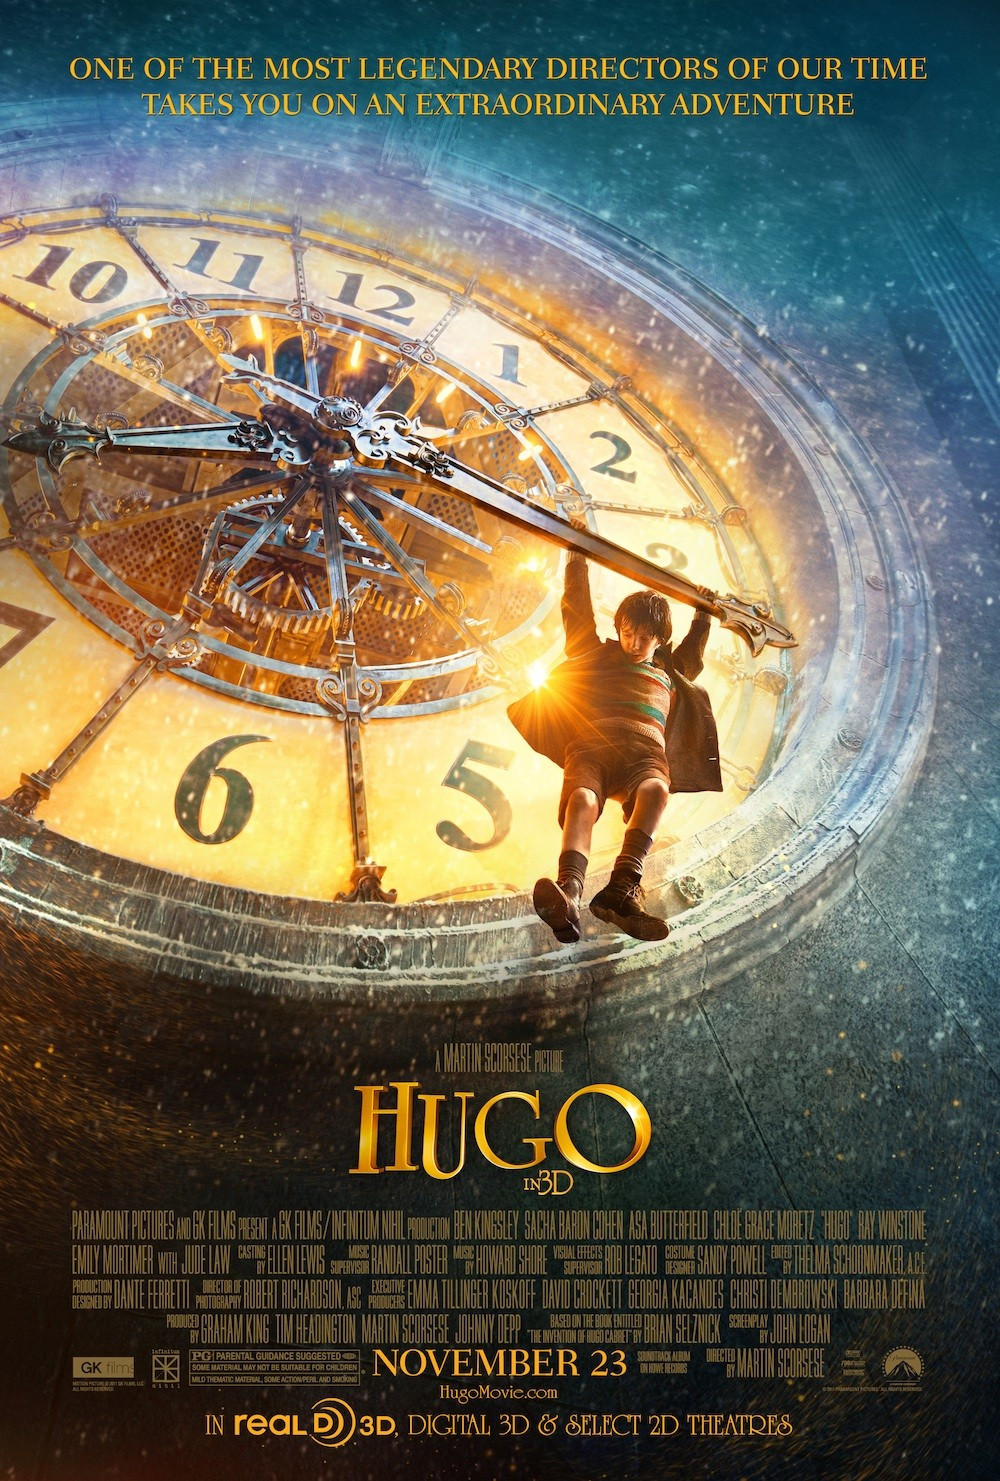 http://collider.com/wp-content/uploads/hugo-movie-poster-02.jpg